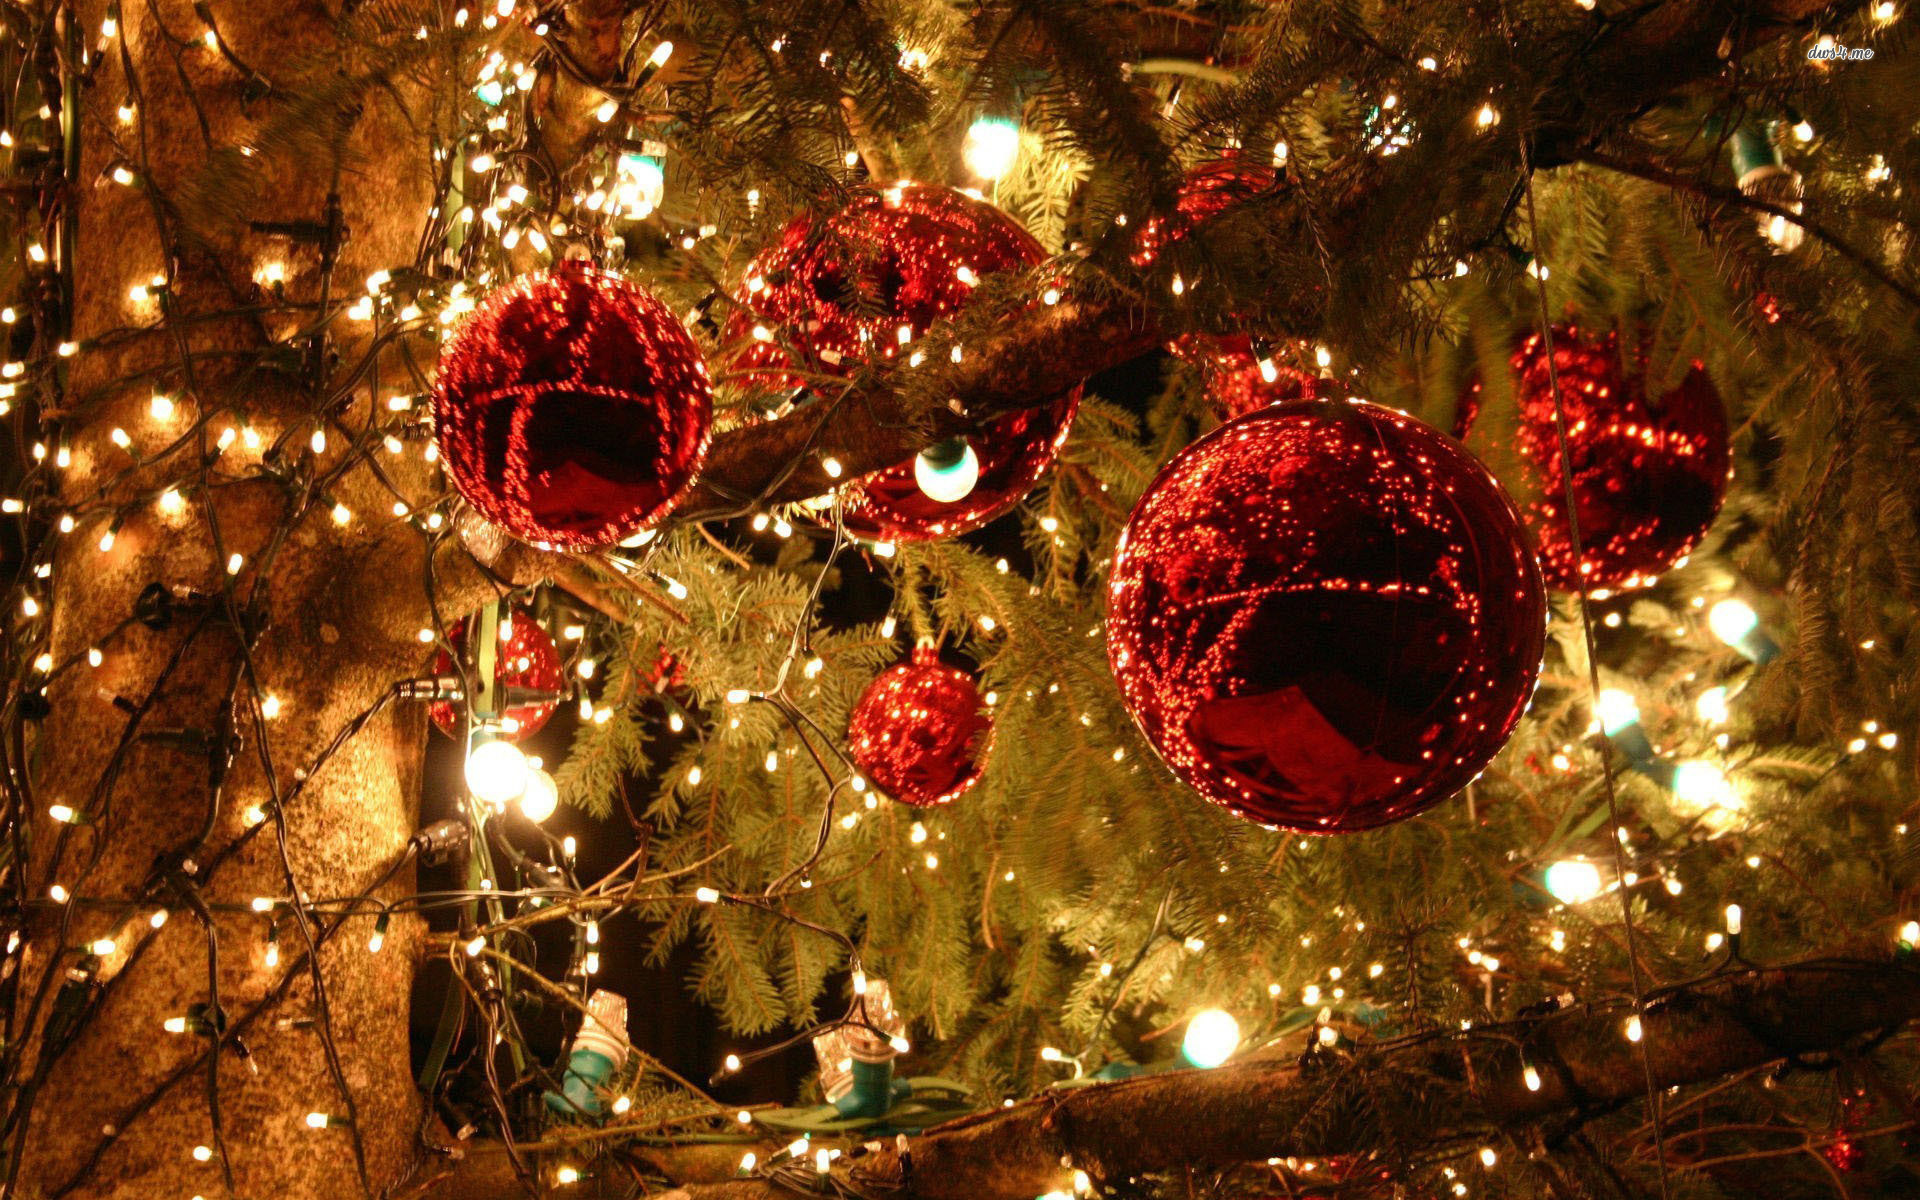 Christmas Ornament Wallpapers HD 1920x1200